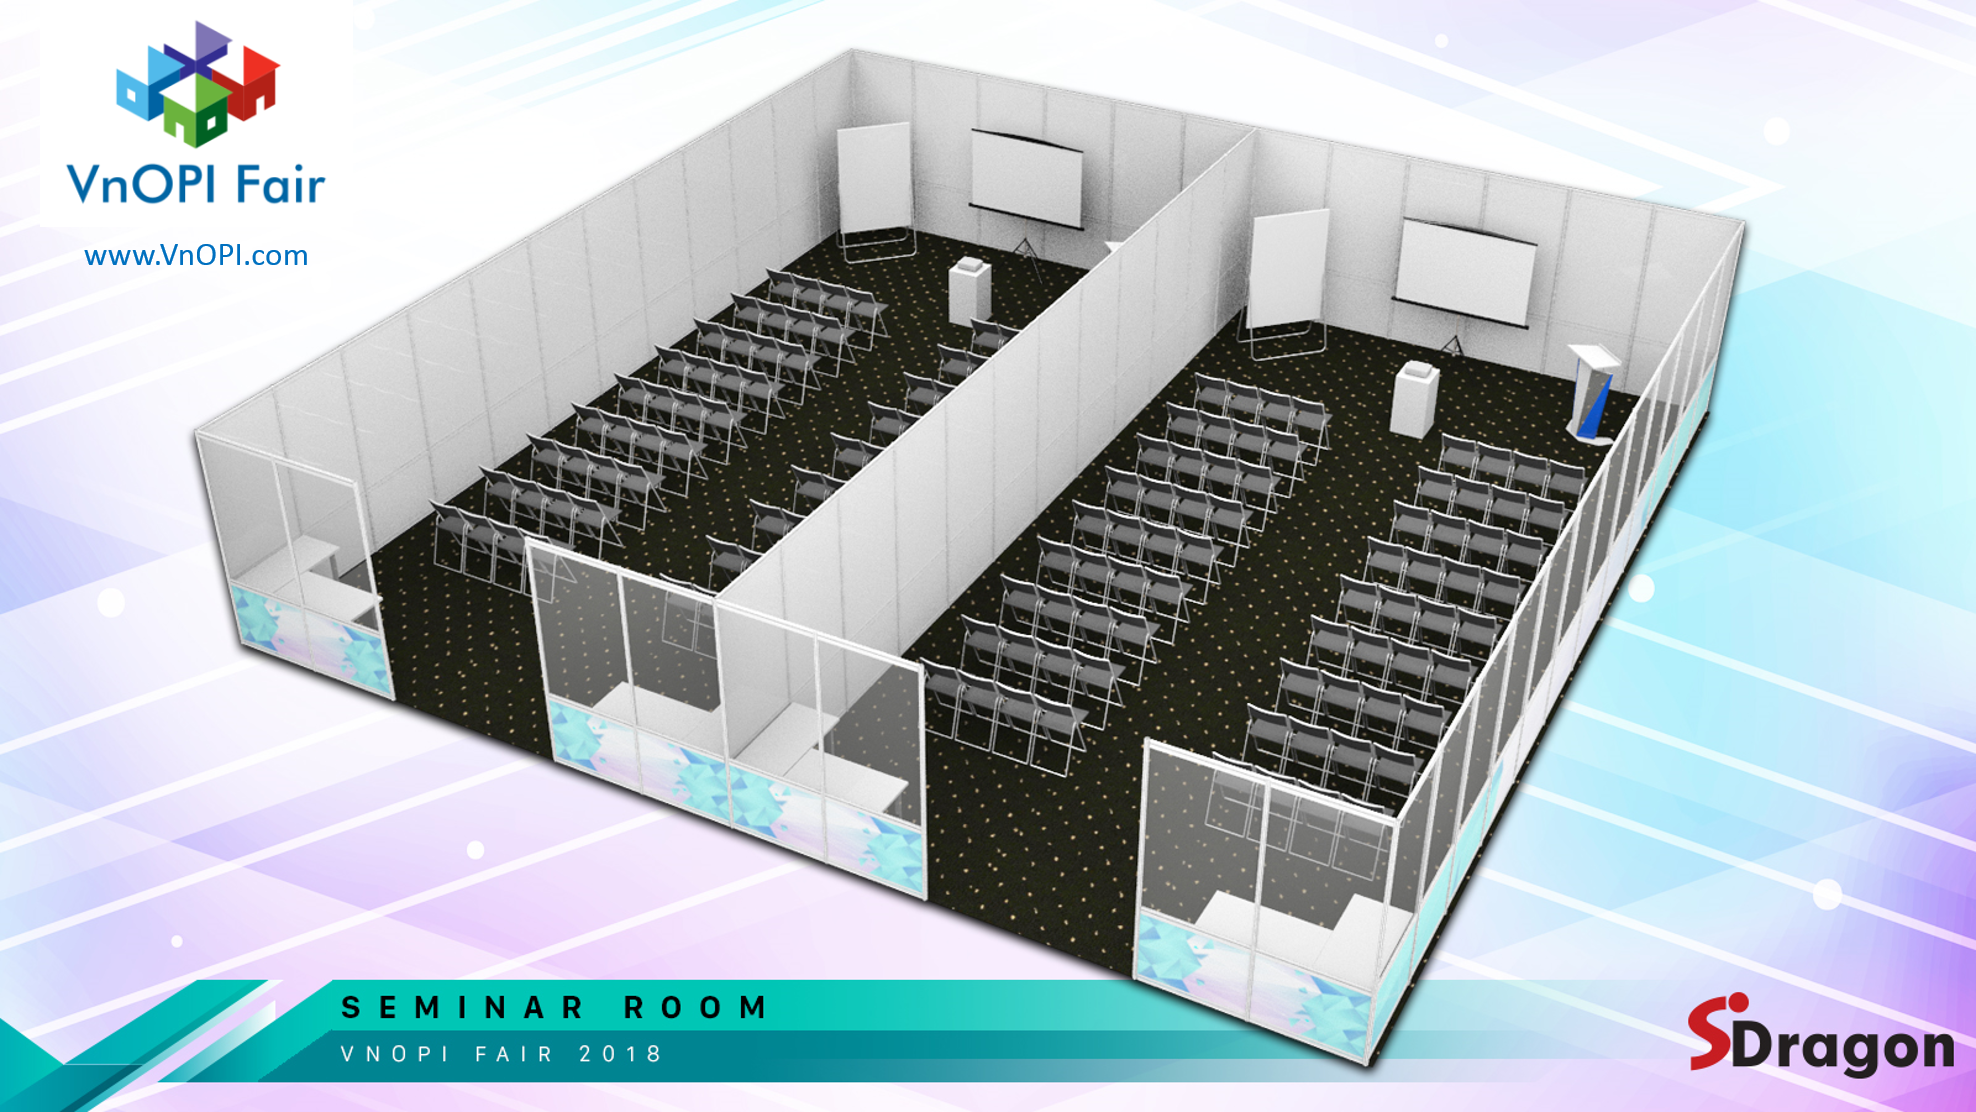 VnOPI_B2B Desk Booth Layout 1